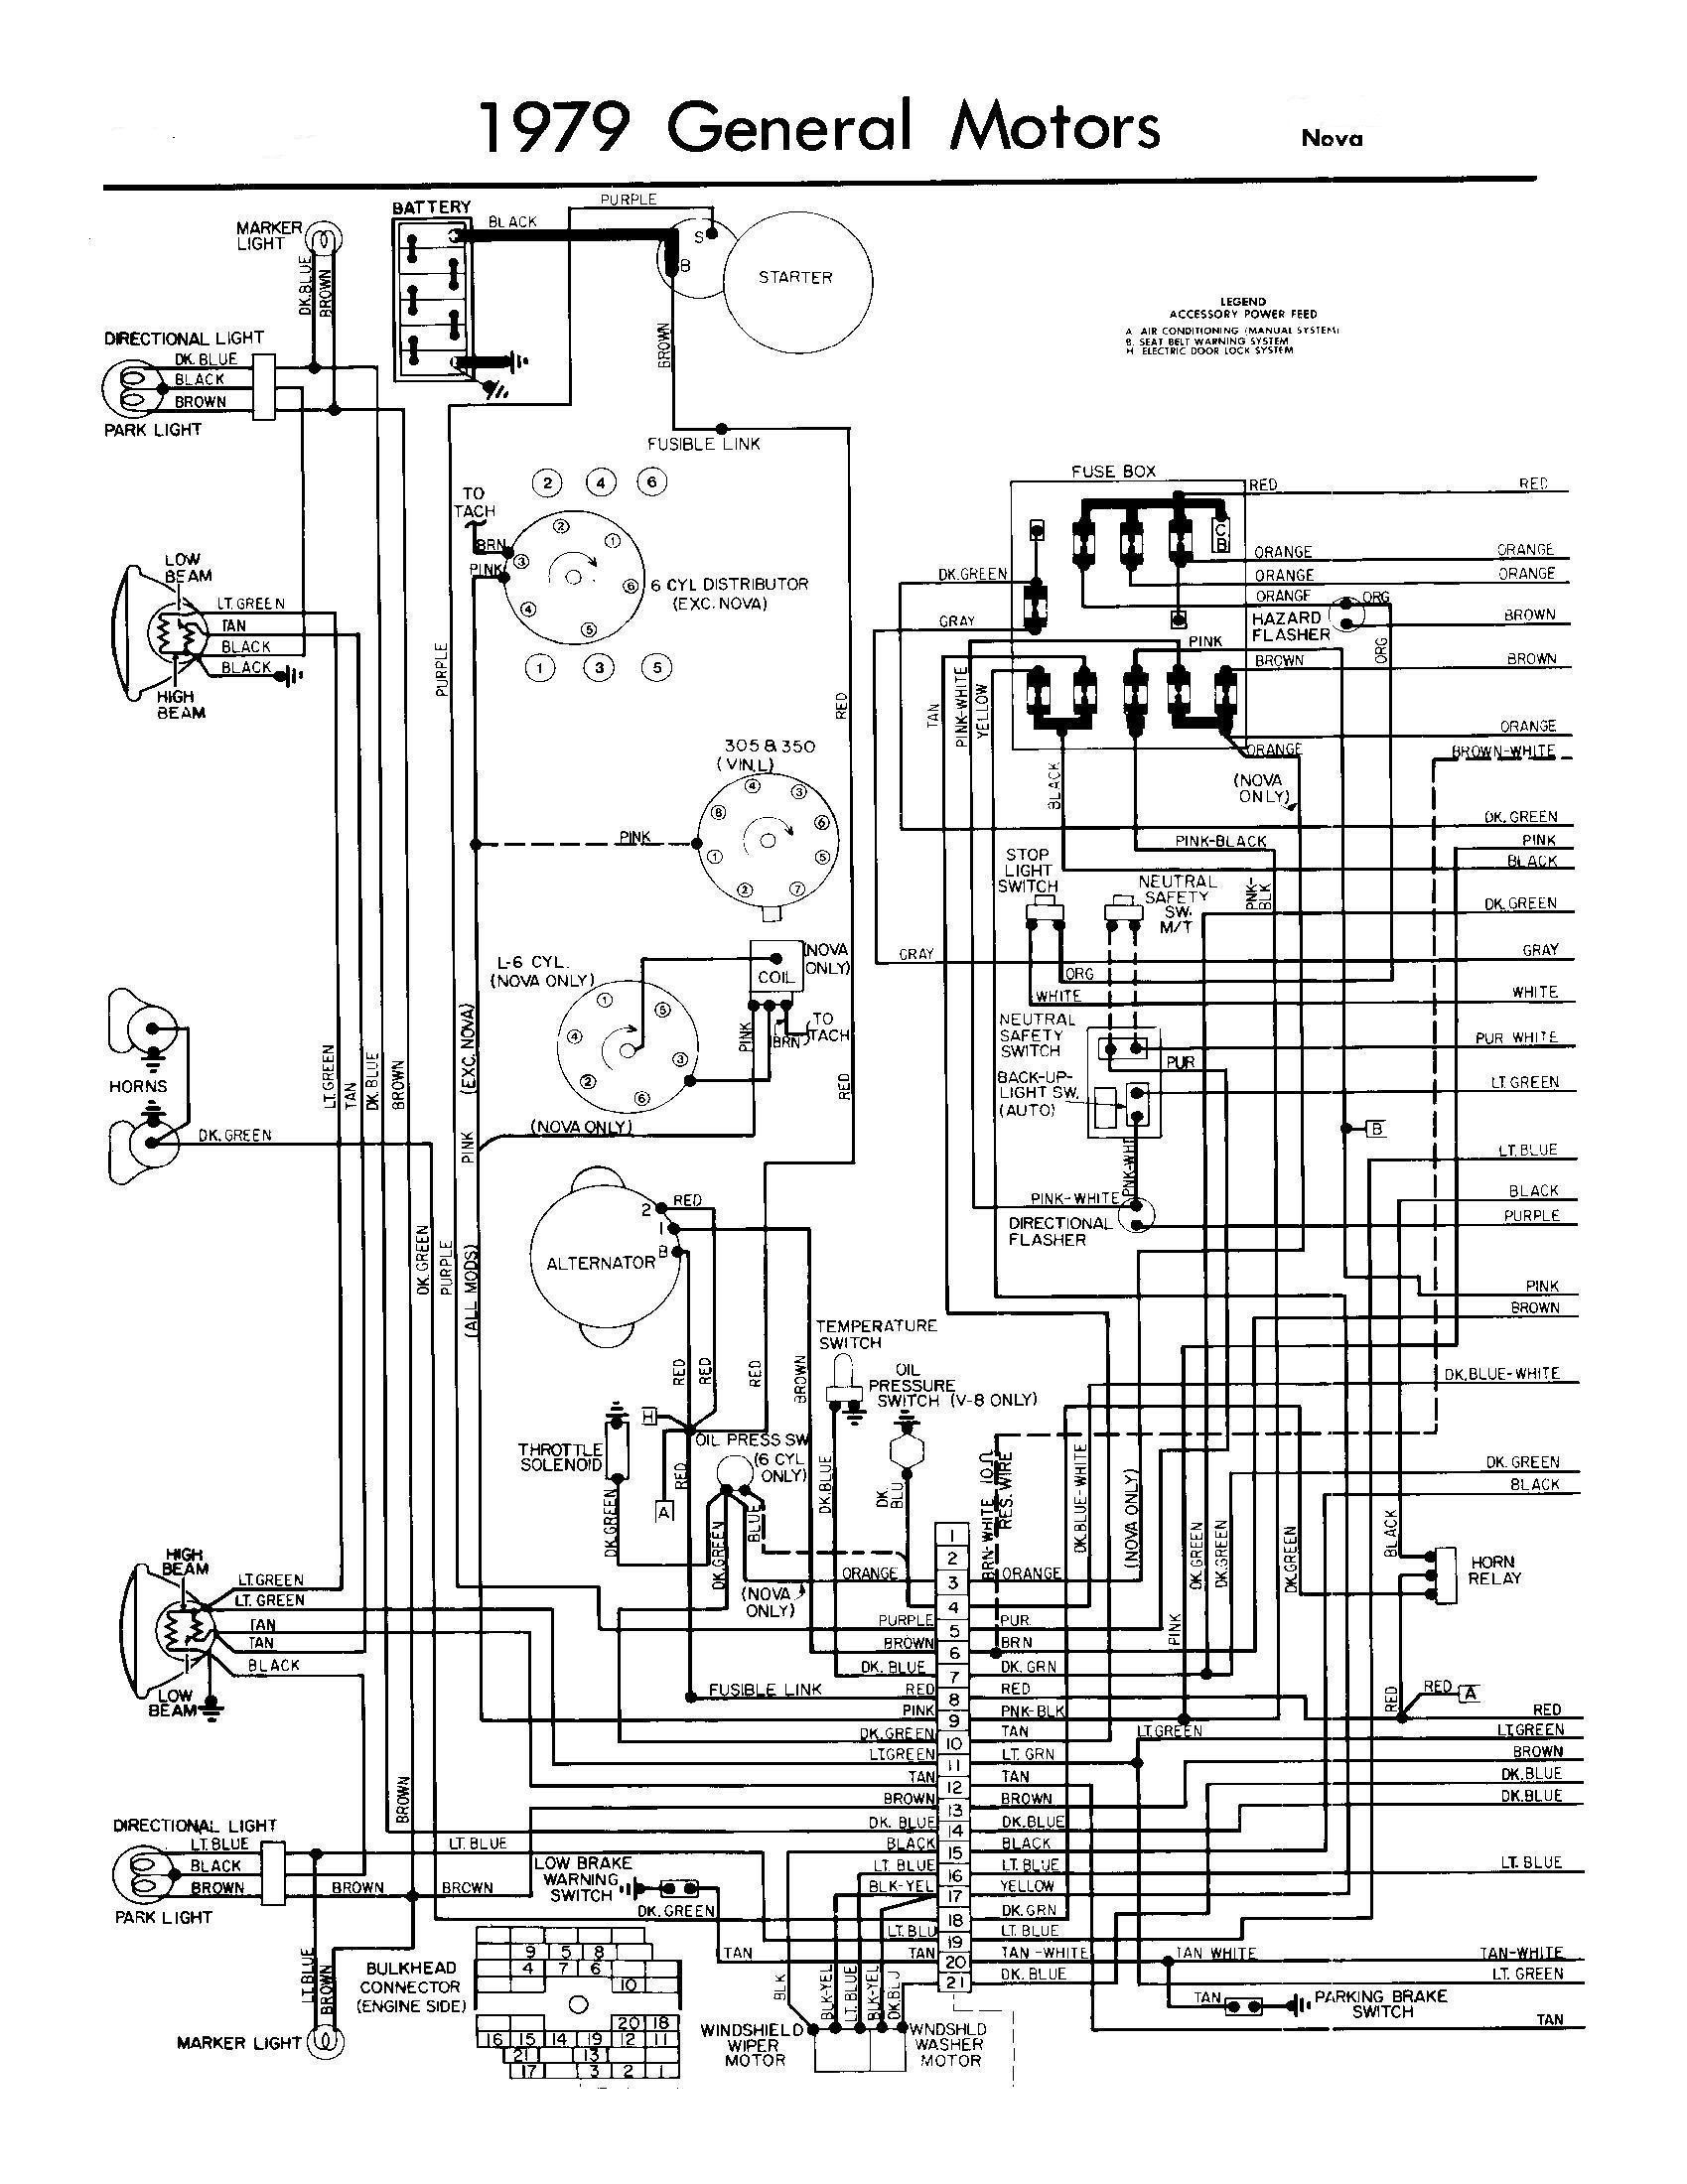 chevrolet wiring diagrams free z3 wiring library diagramfree chevy truck wiring diagram z3 wiring library diagram chevrolet wiring diagrams free download chevrolet wiring diagrams free